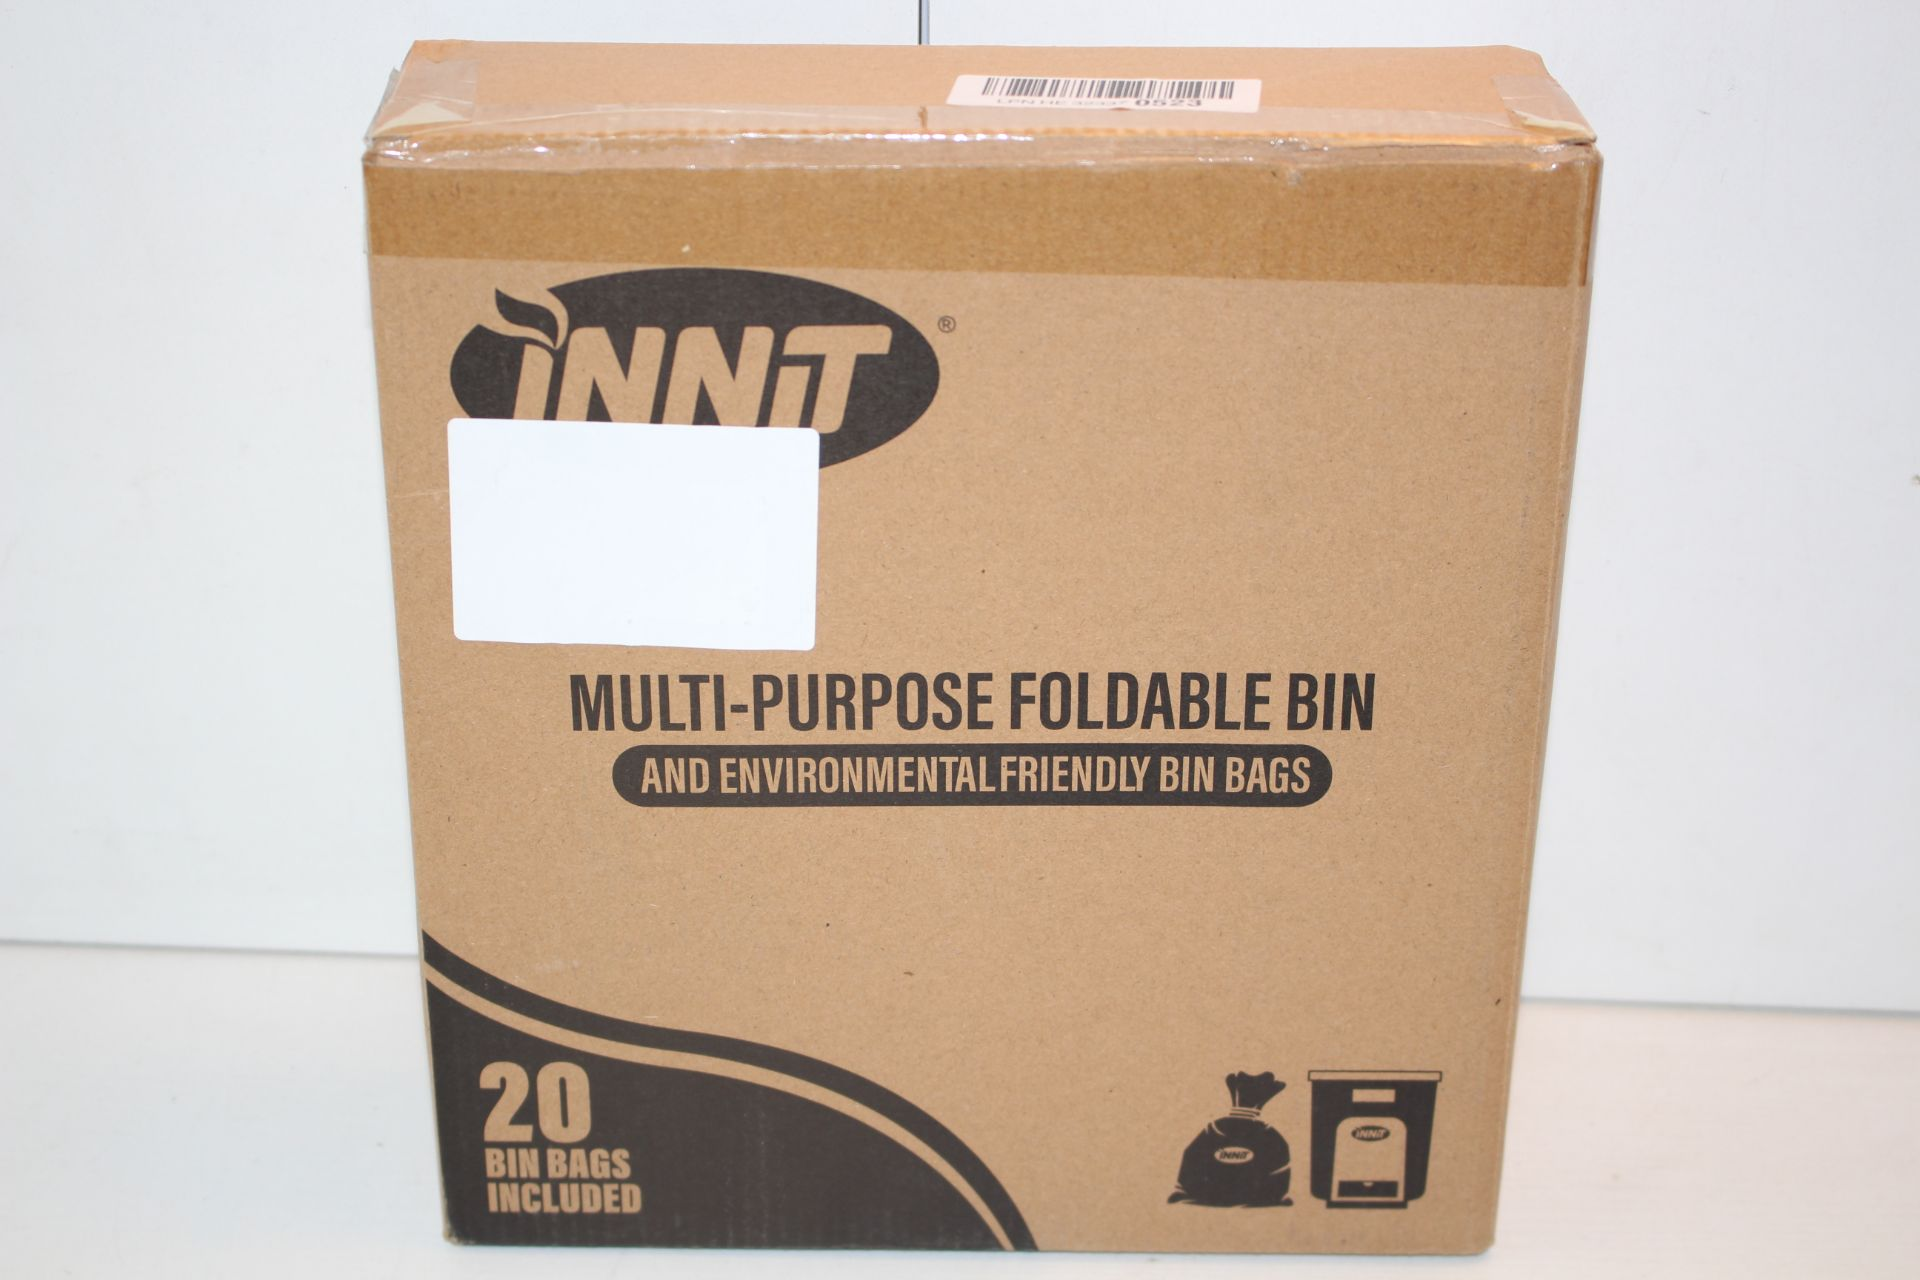 BOXED INNIT MULTIPURPOSE FOLDABLE BINCondition ReportAppraisal Available on Request- All Items are